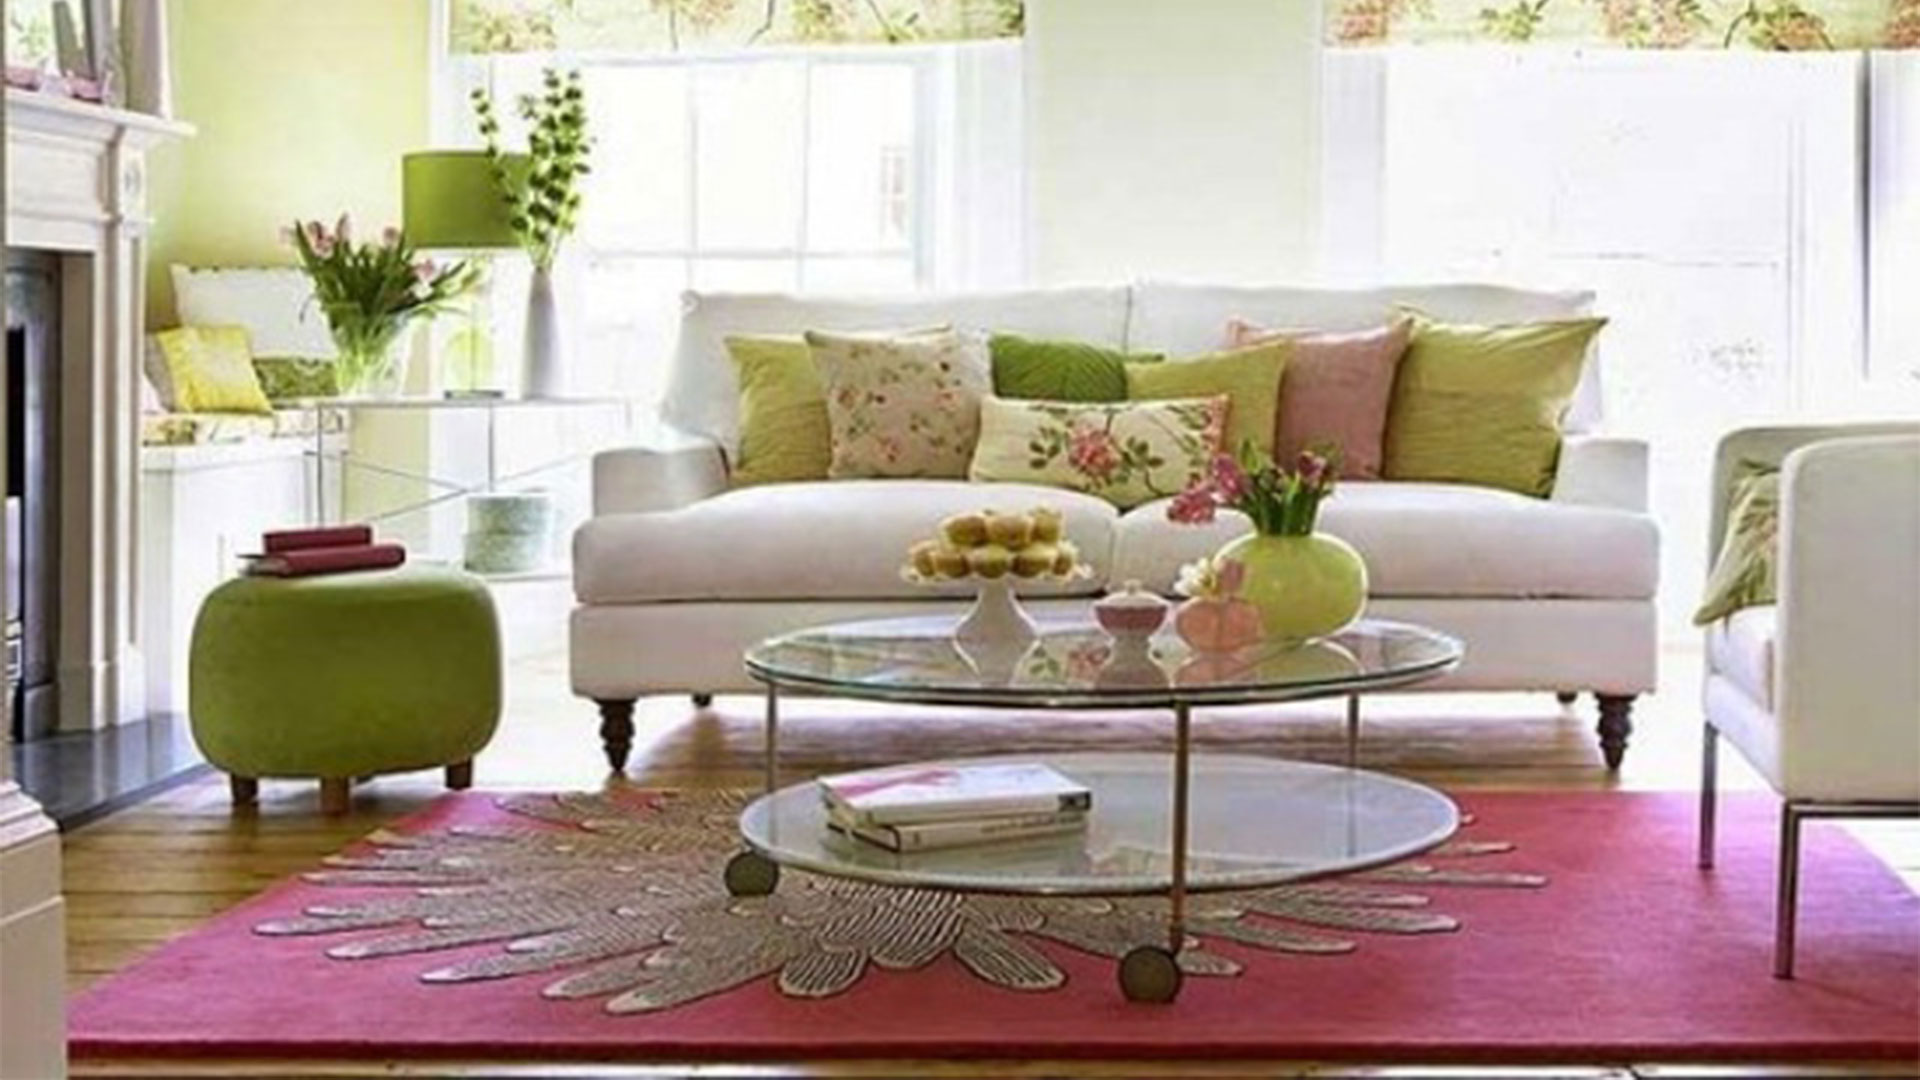 36 living room decorating ideas that smells like spring for Decoration living room ideas